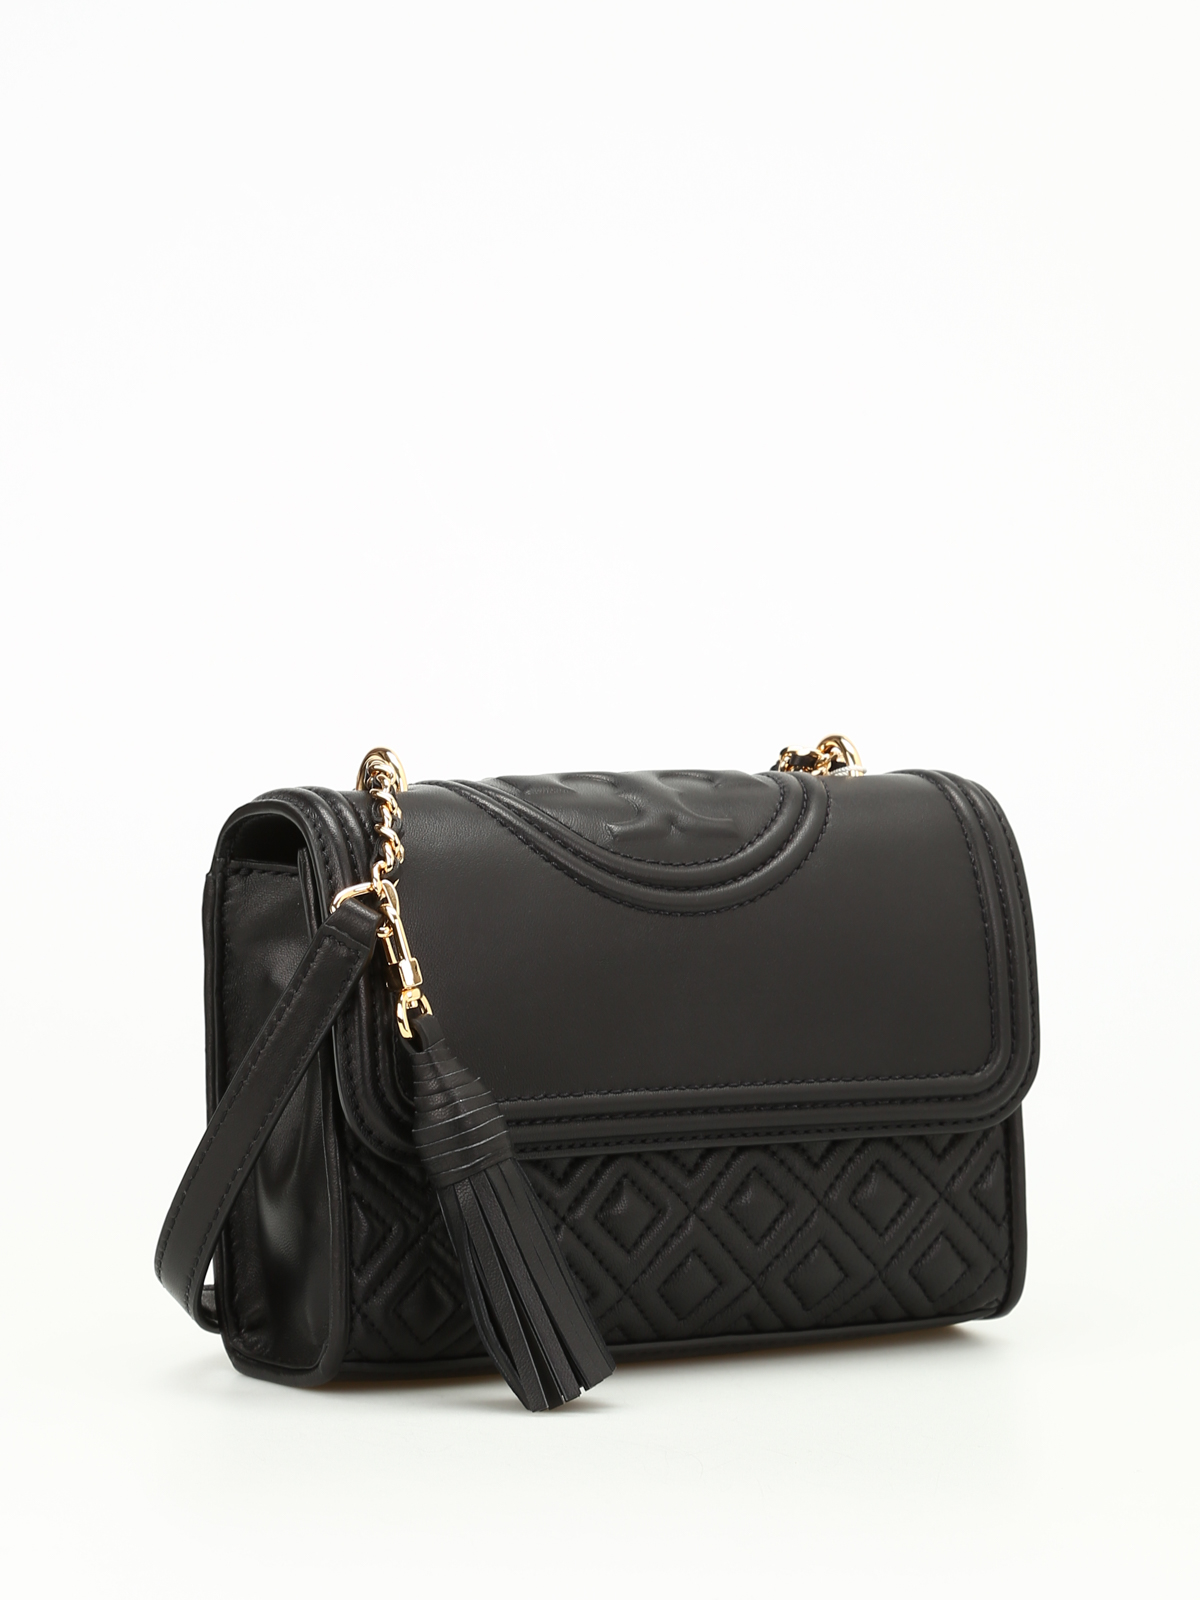 d3f0e40ca72 TORY BURCH  shoulder bags online - Fleming quilted leather small bag